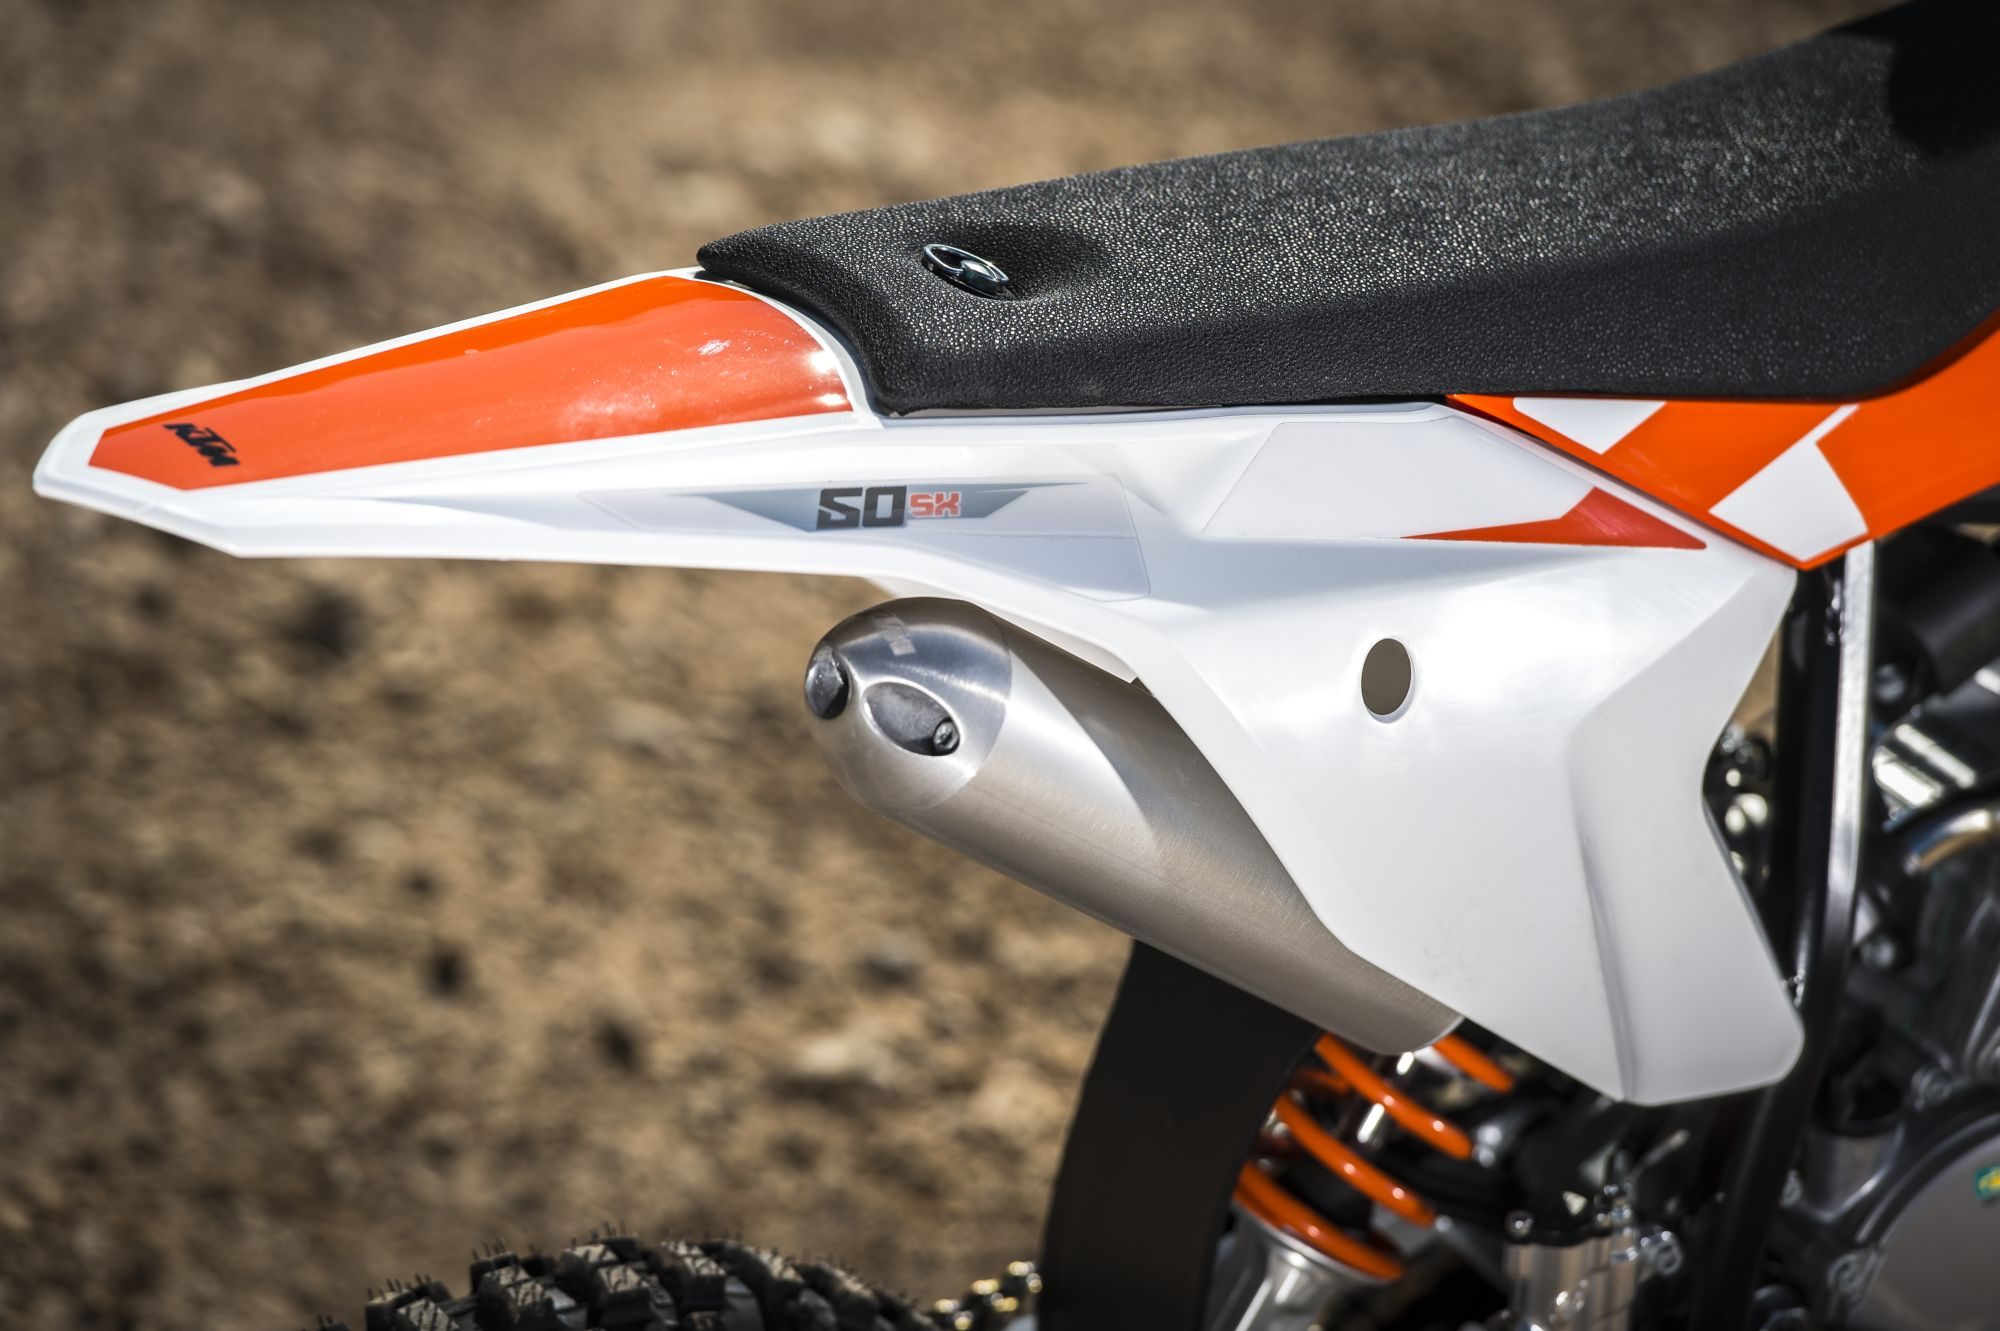 All technical data of the model 50 sx from ktm